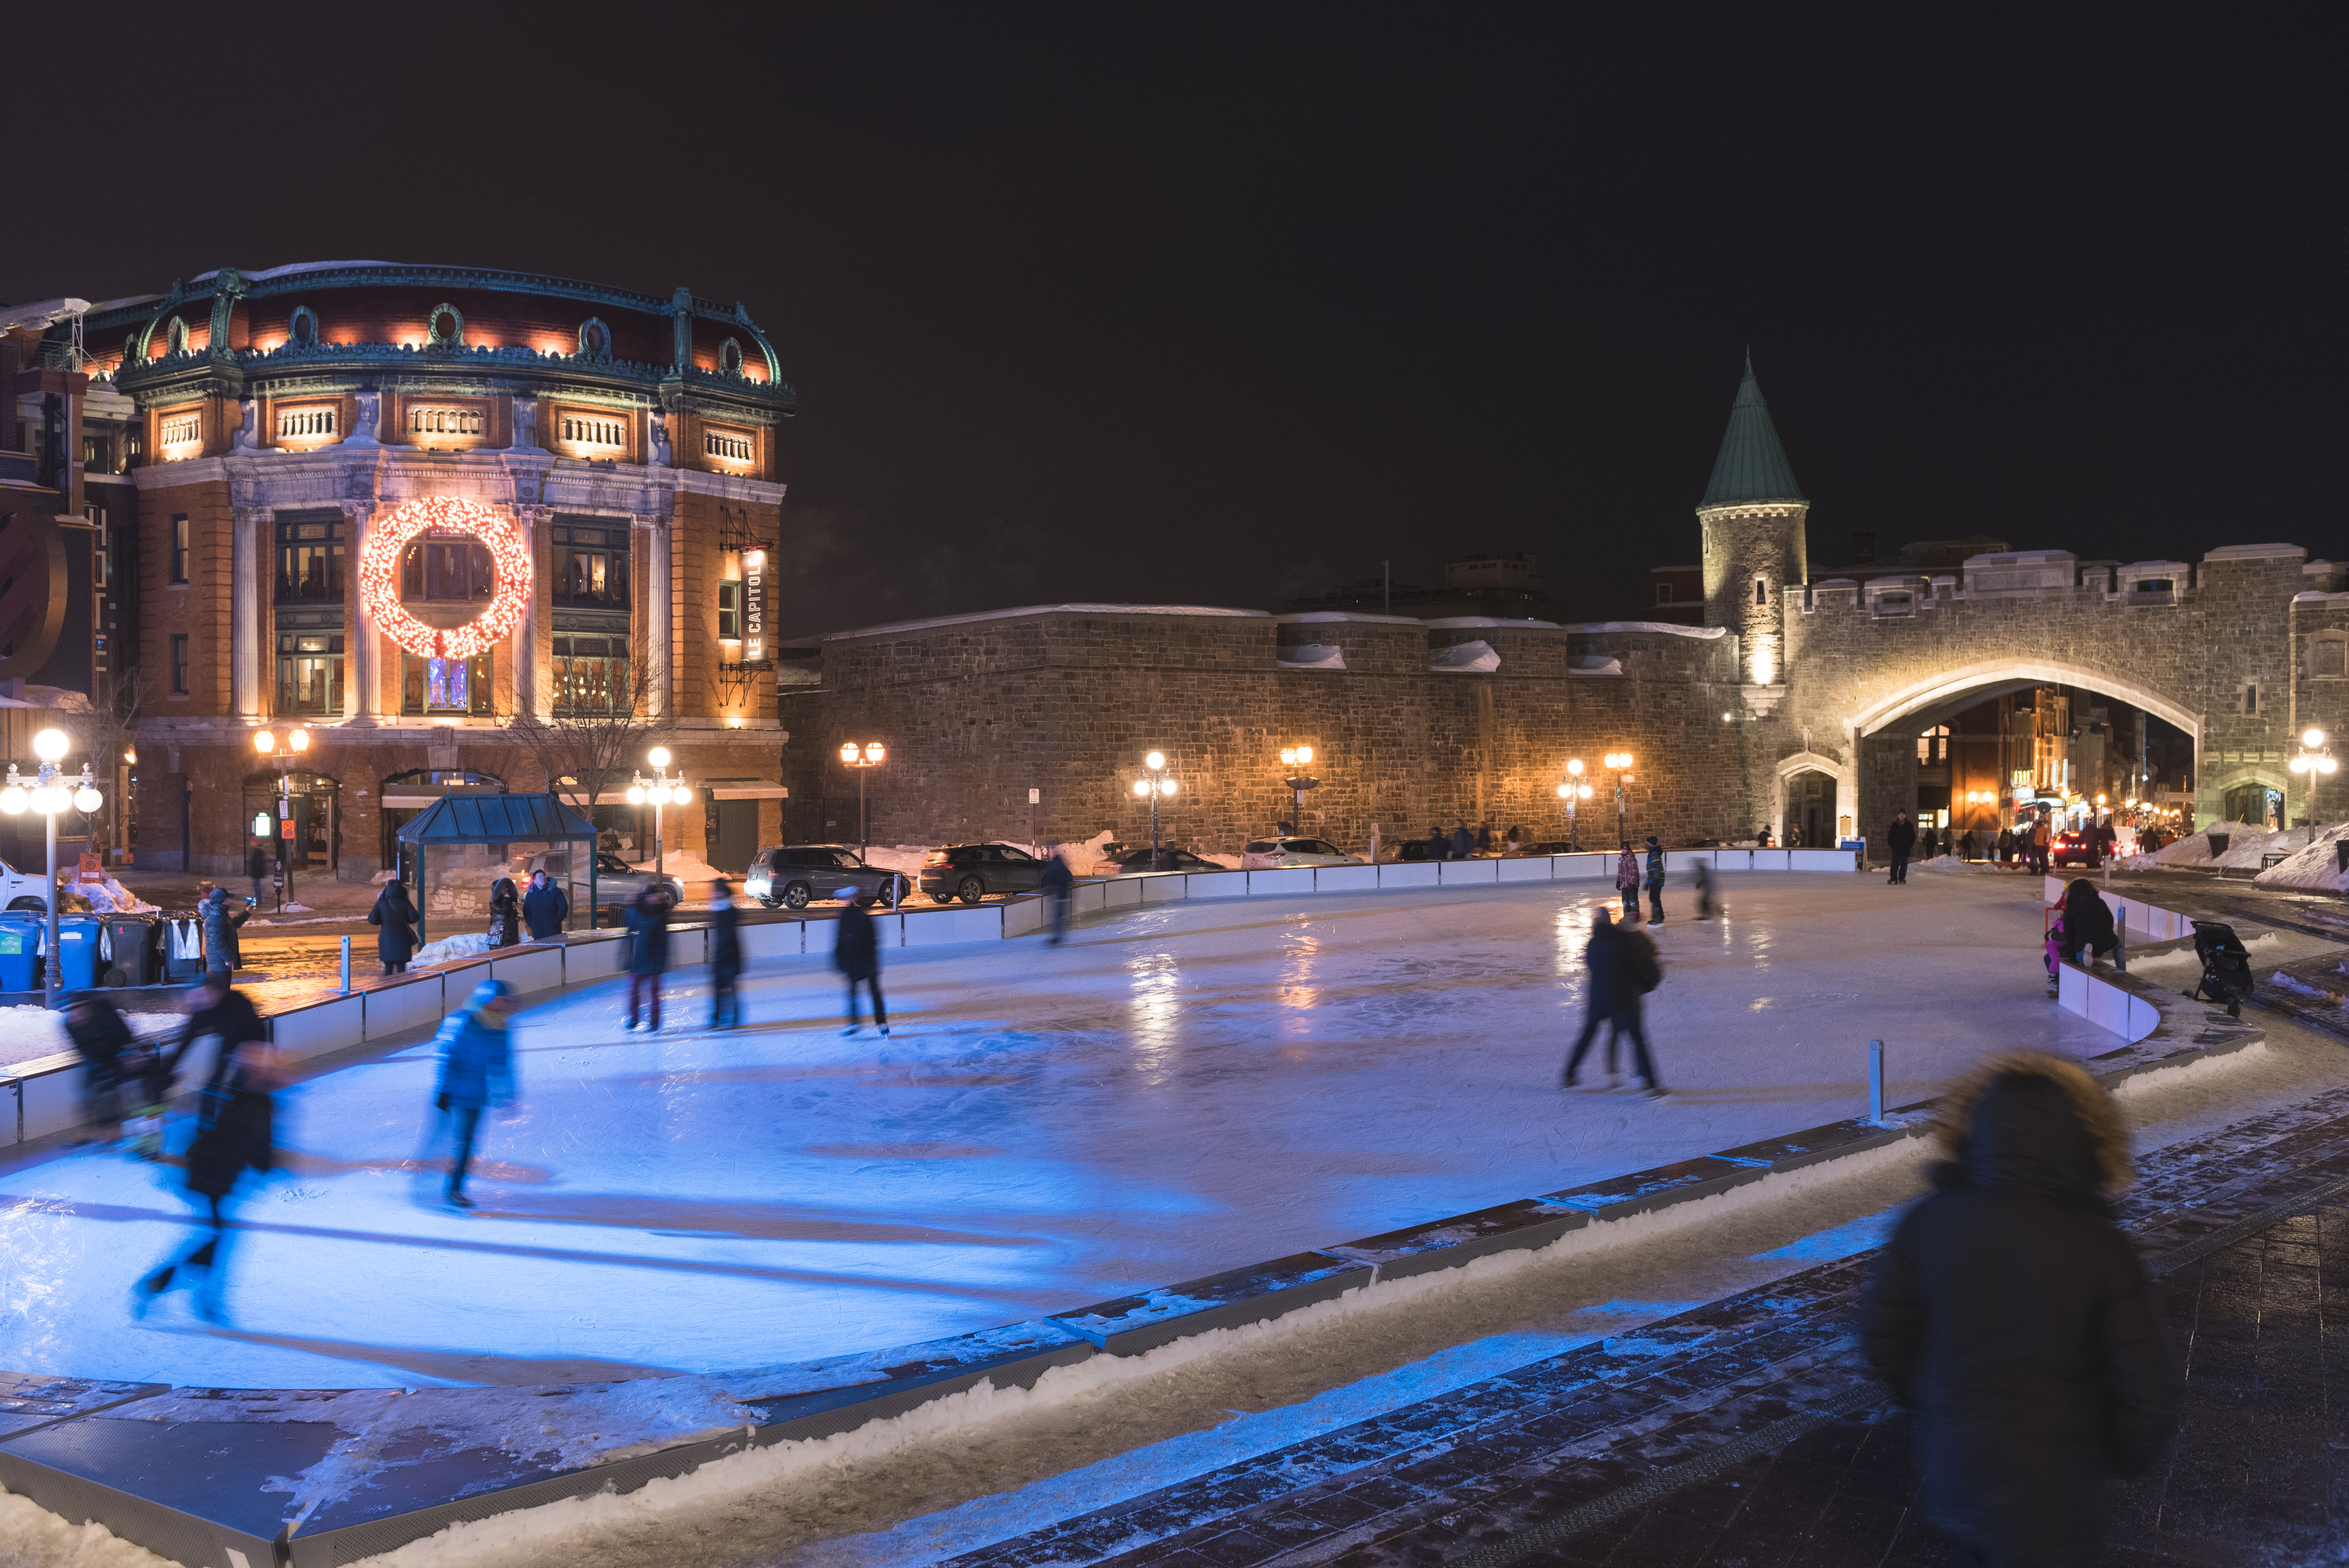 The skating rink at Place D'Youville in Quebec City. (Photo: Tourism Quebec / Francis Gagnon)